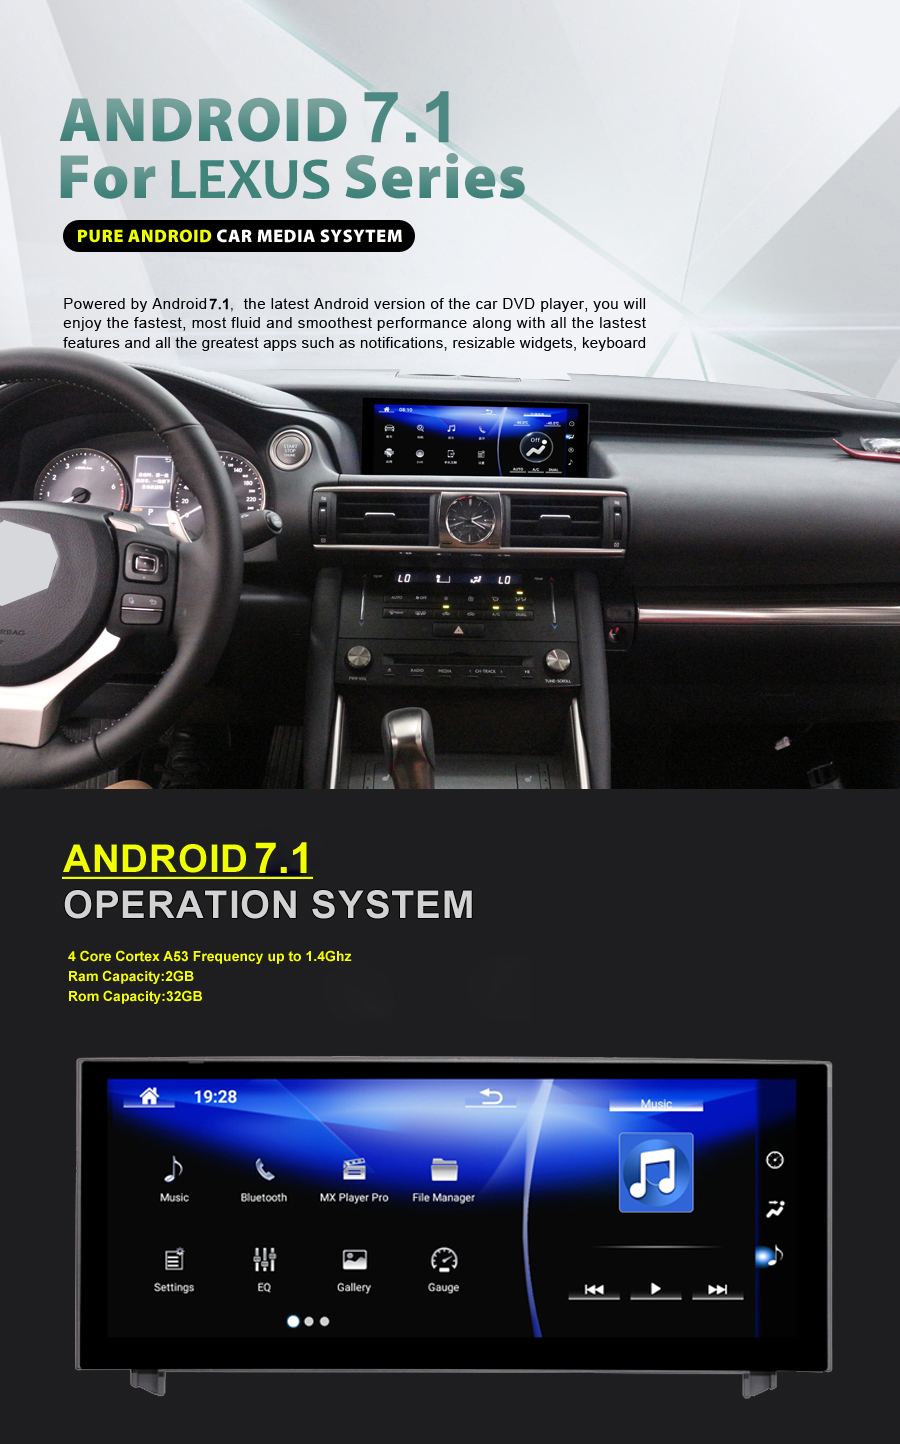 10.25 inch NAVIRIDER Android 7.1 Car Radio GPS Navigation BT Head Unit Screen for Lexus IS 200 250 300 350 200t 300h 2013-2017